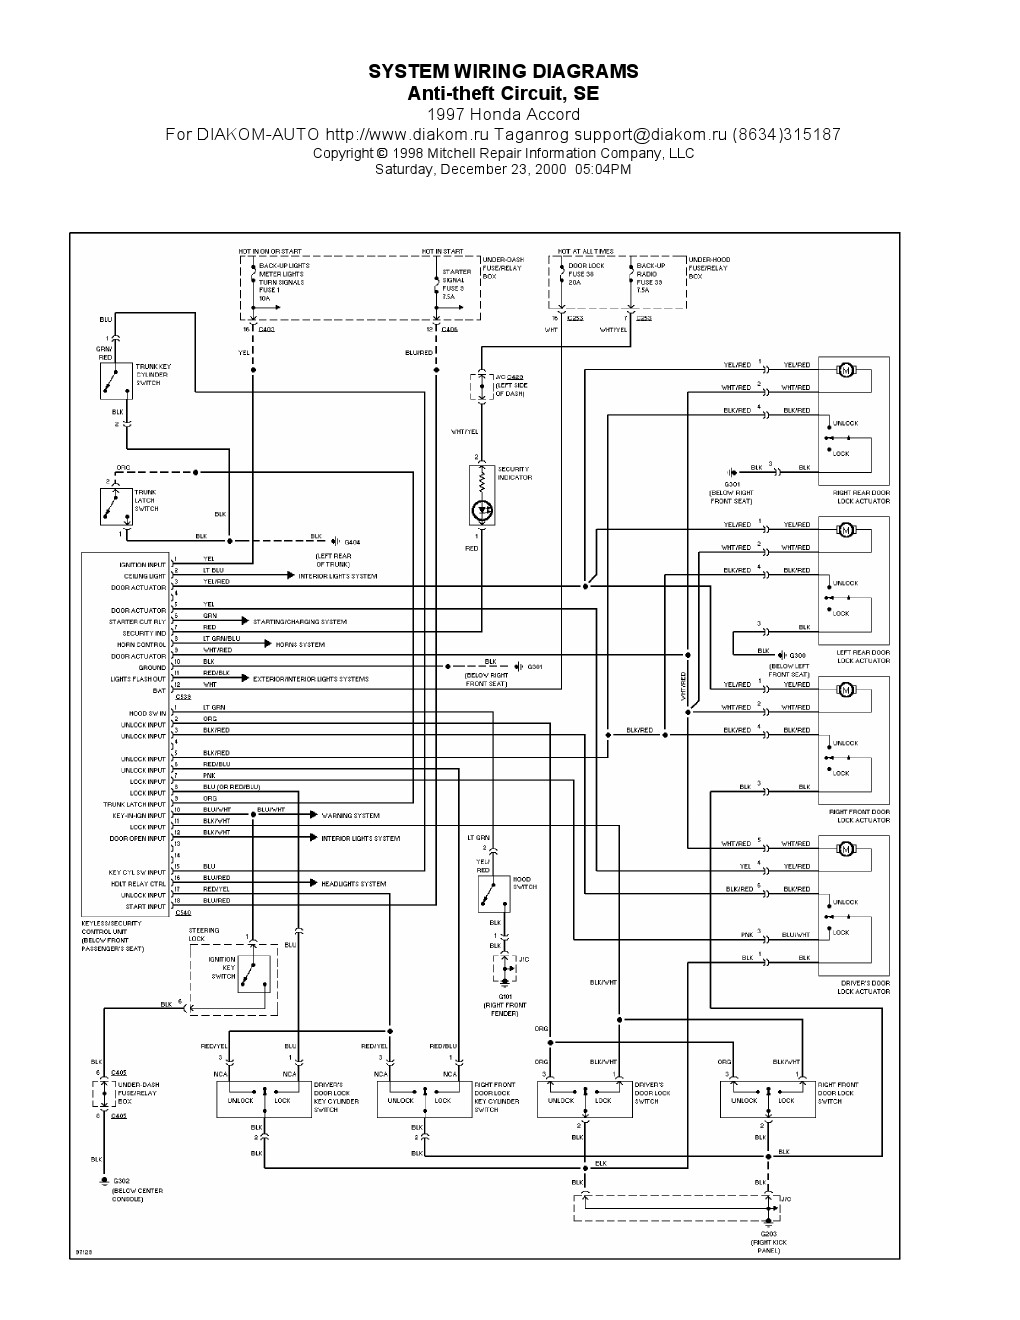 honda accord stereo wiring harness image 1997 honda accord radio wiring diagram jodebal com on 1997 honda accord stereo wiring harness